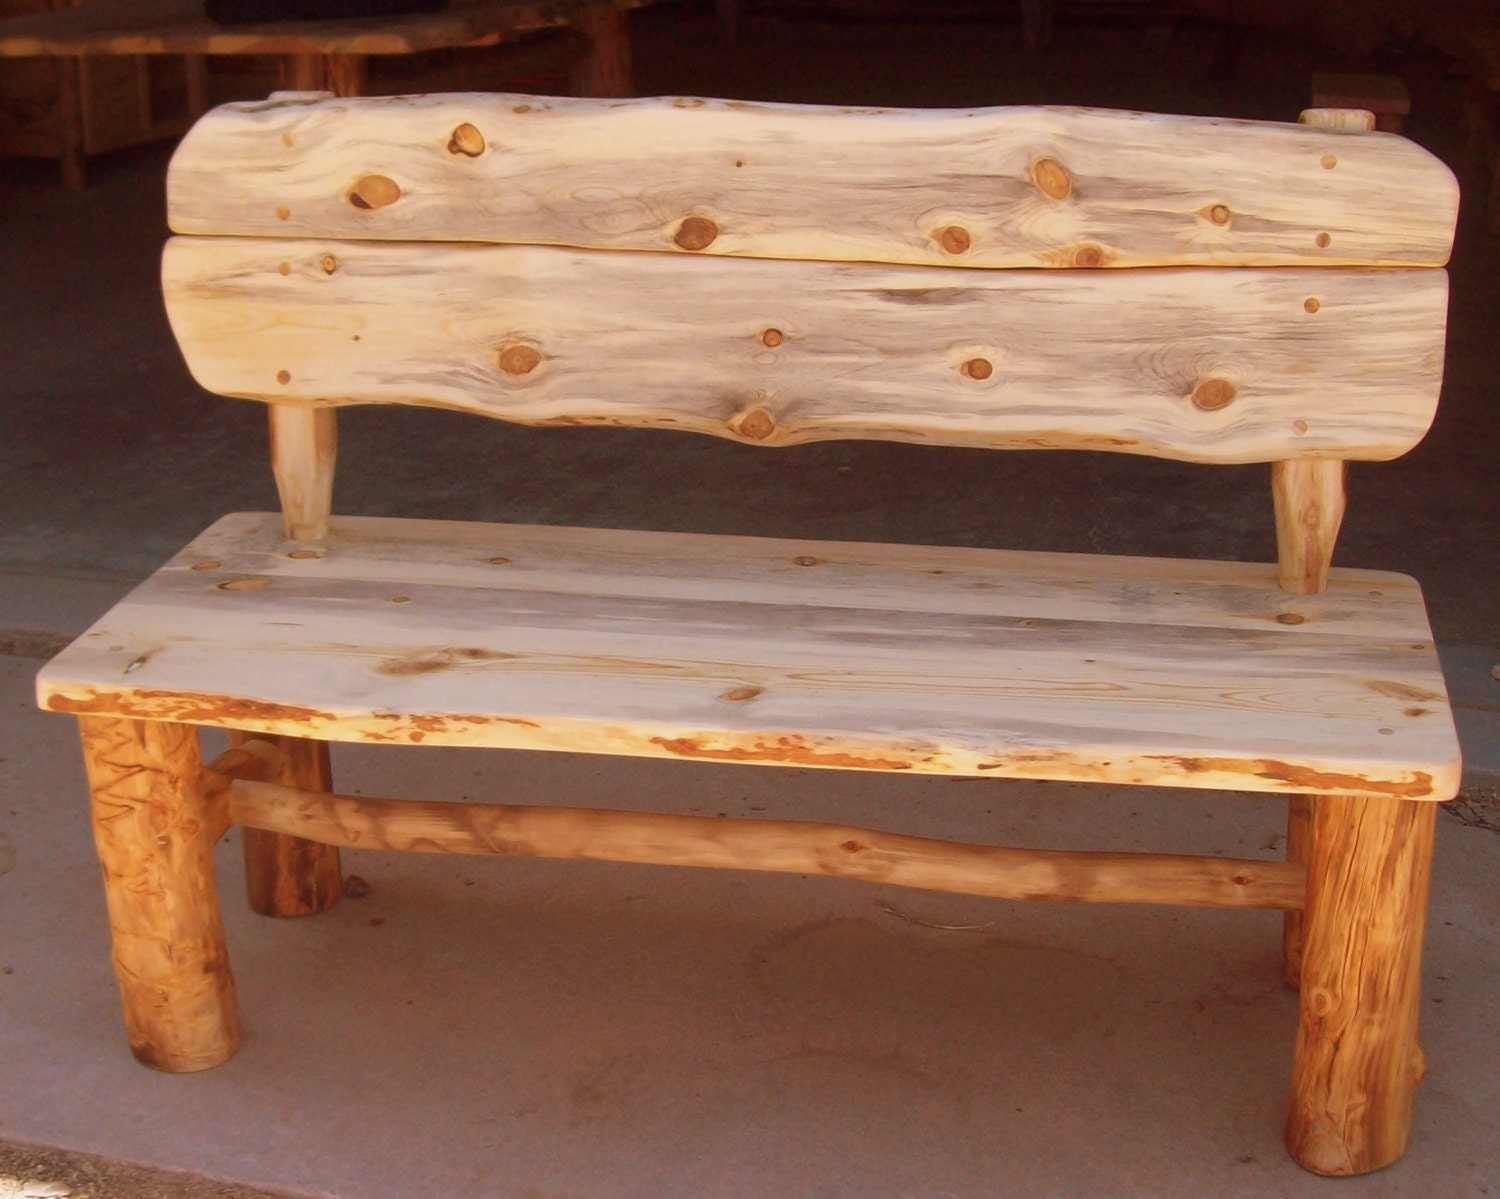 Permalink to plans for wooden porch furniture